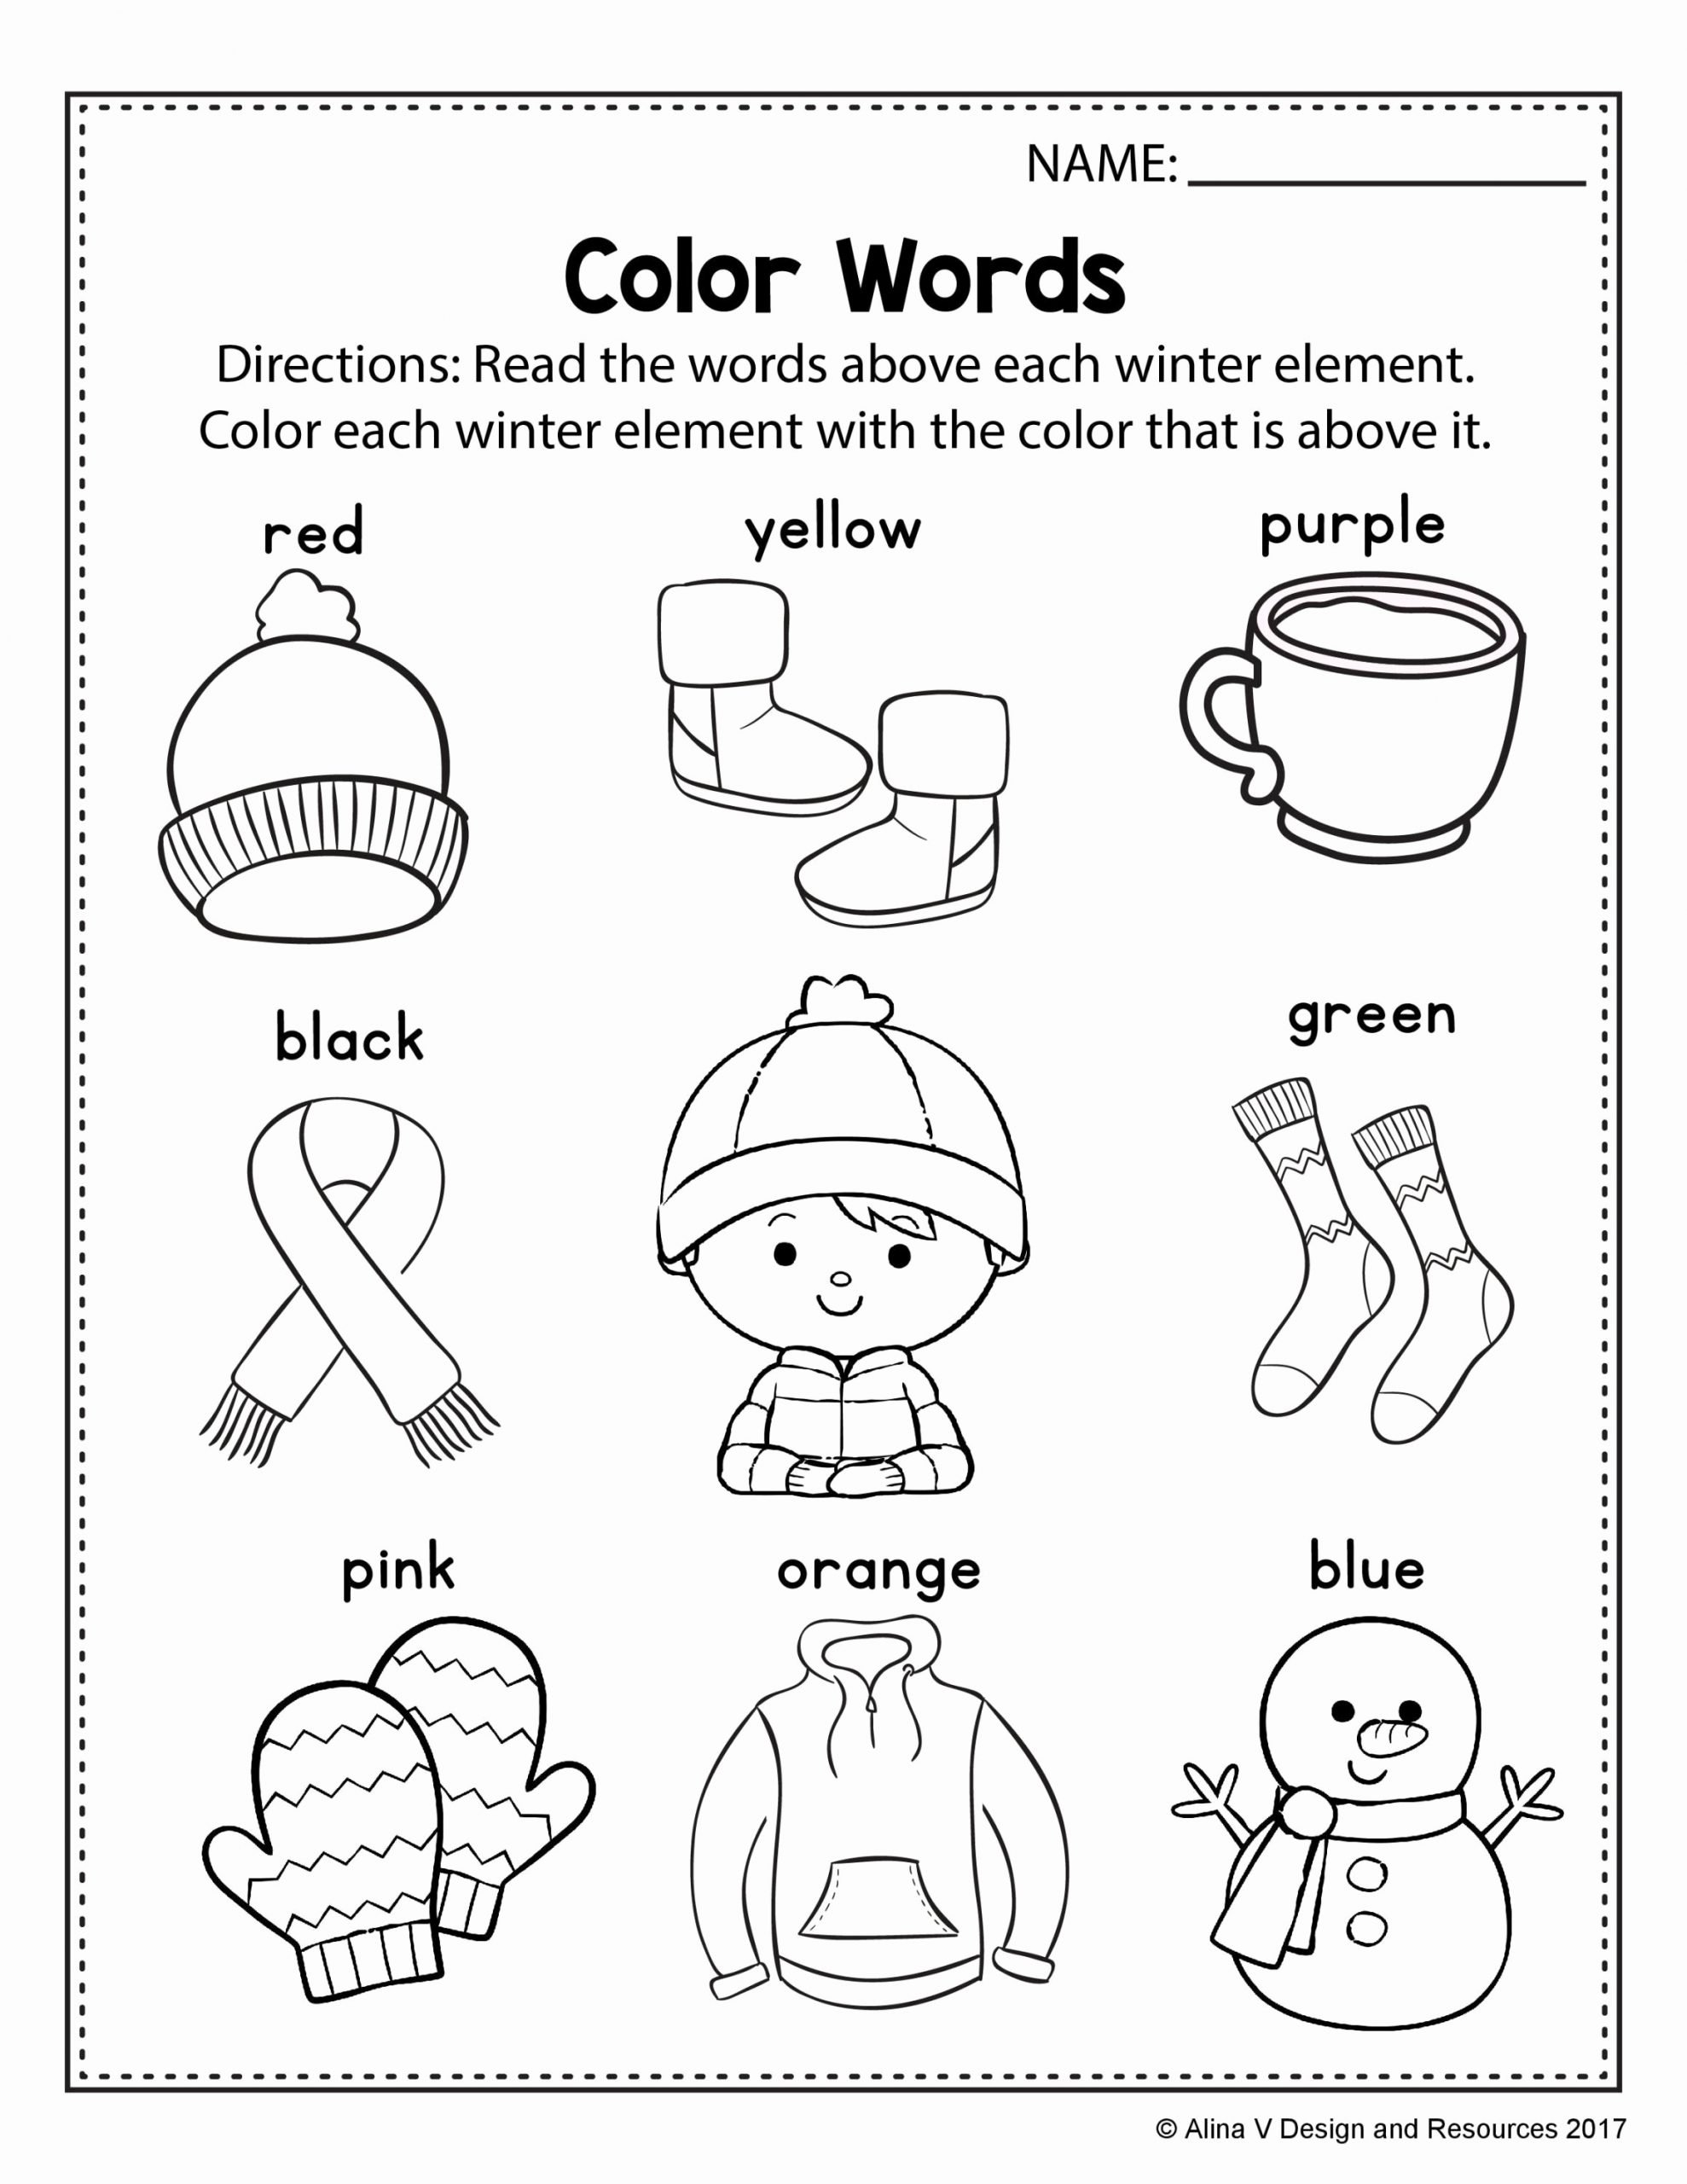 Winter Activities Worksheets for Preschoolers Free Alinavdesign